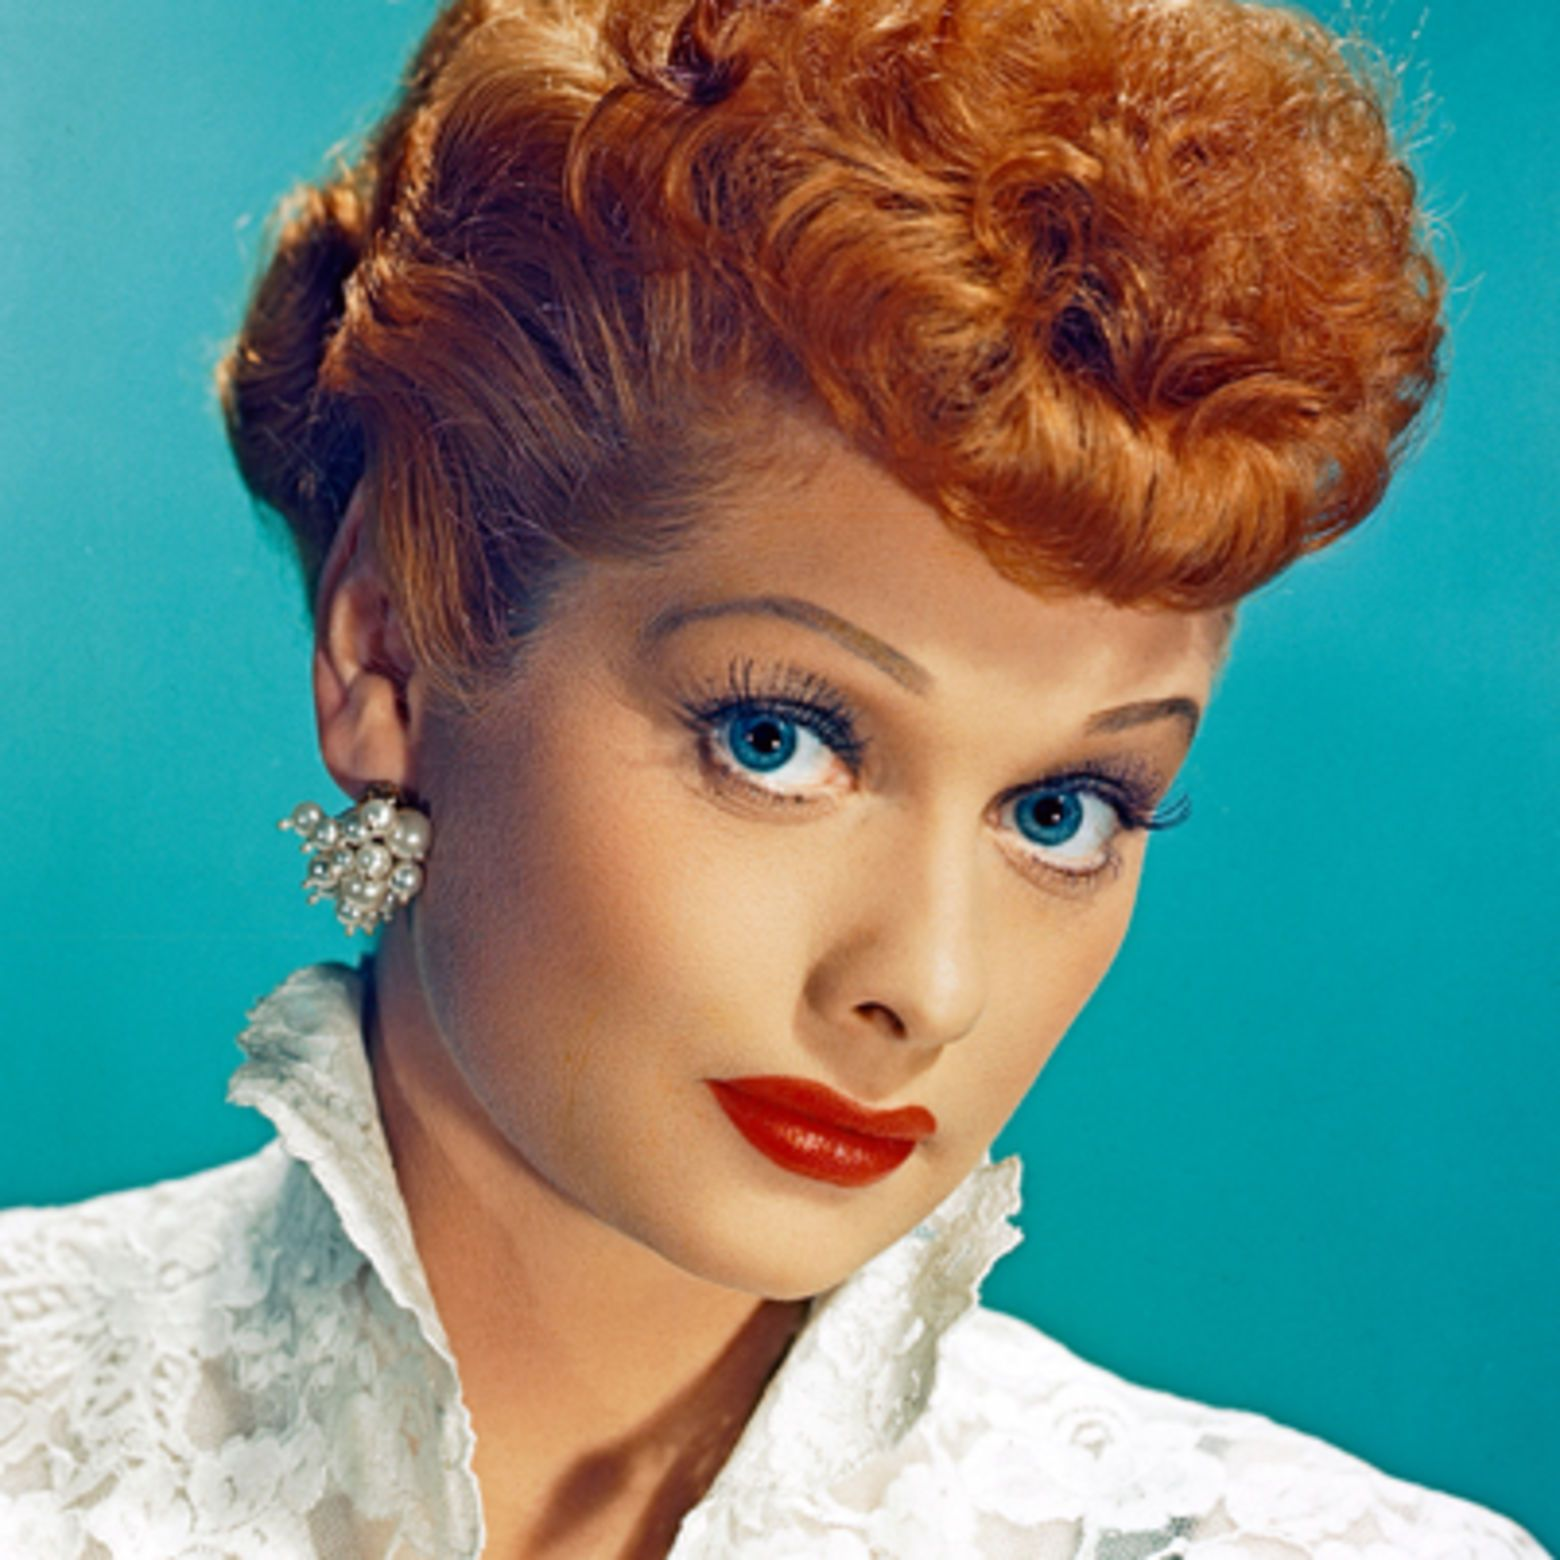 A beautiful actress renowned for her comedic chops, Lucille Ball made TV history on camera and behind the scenes. Learn more at Biography.com.